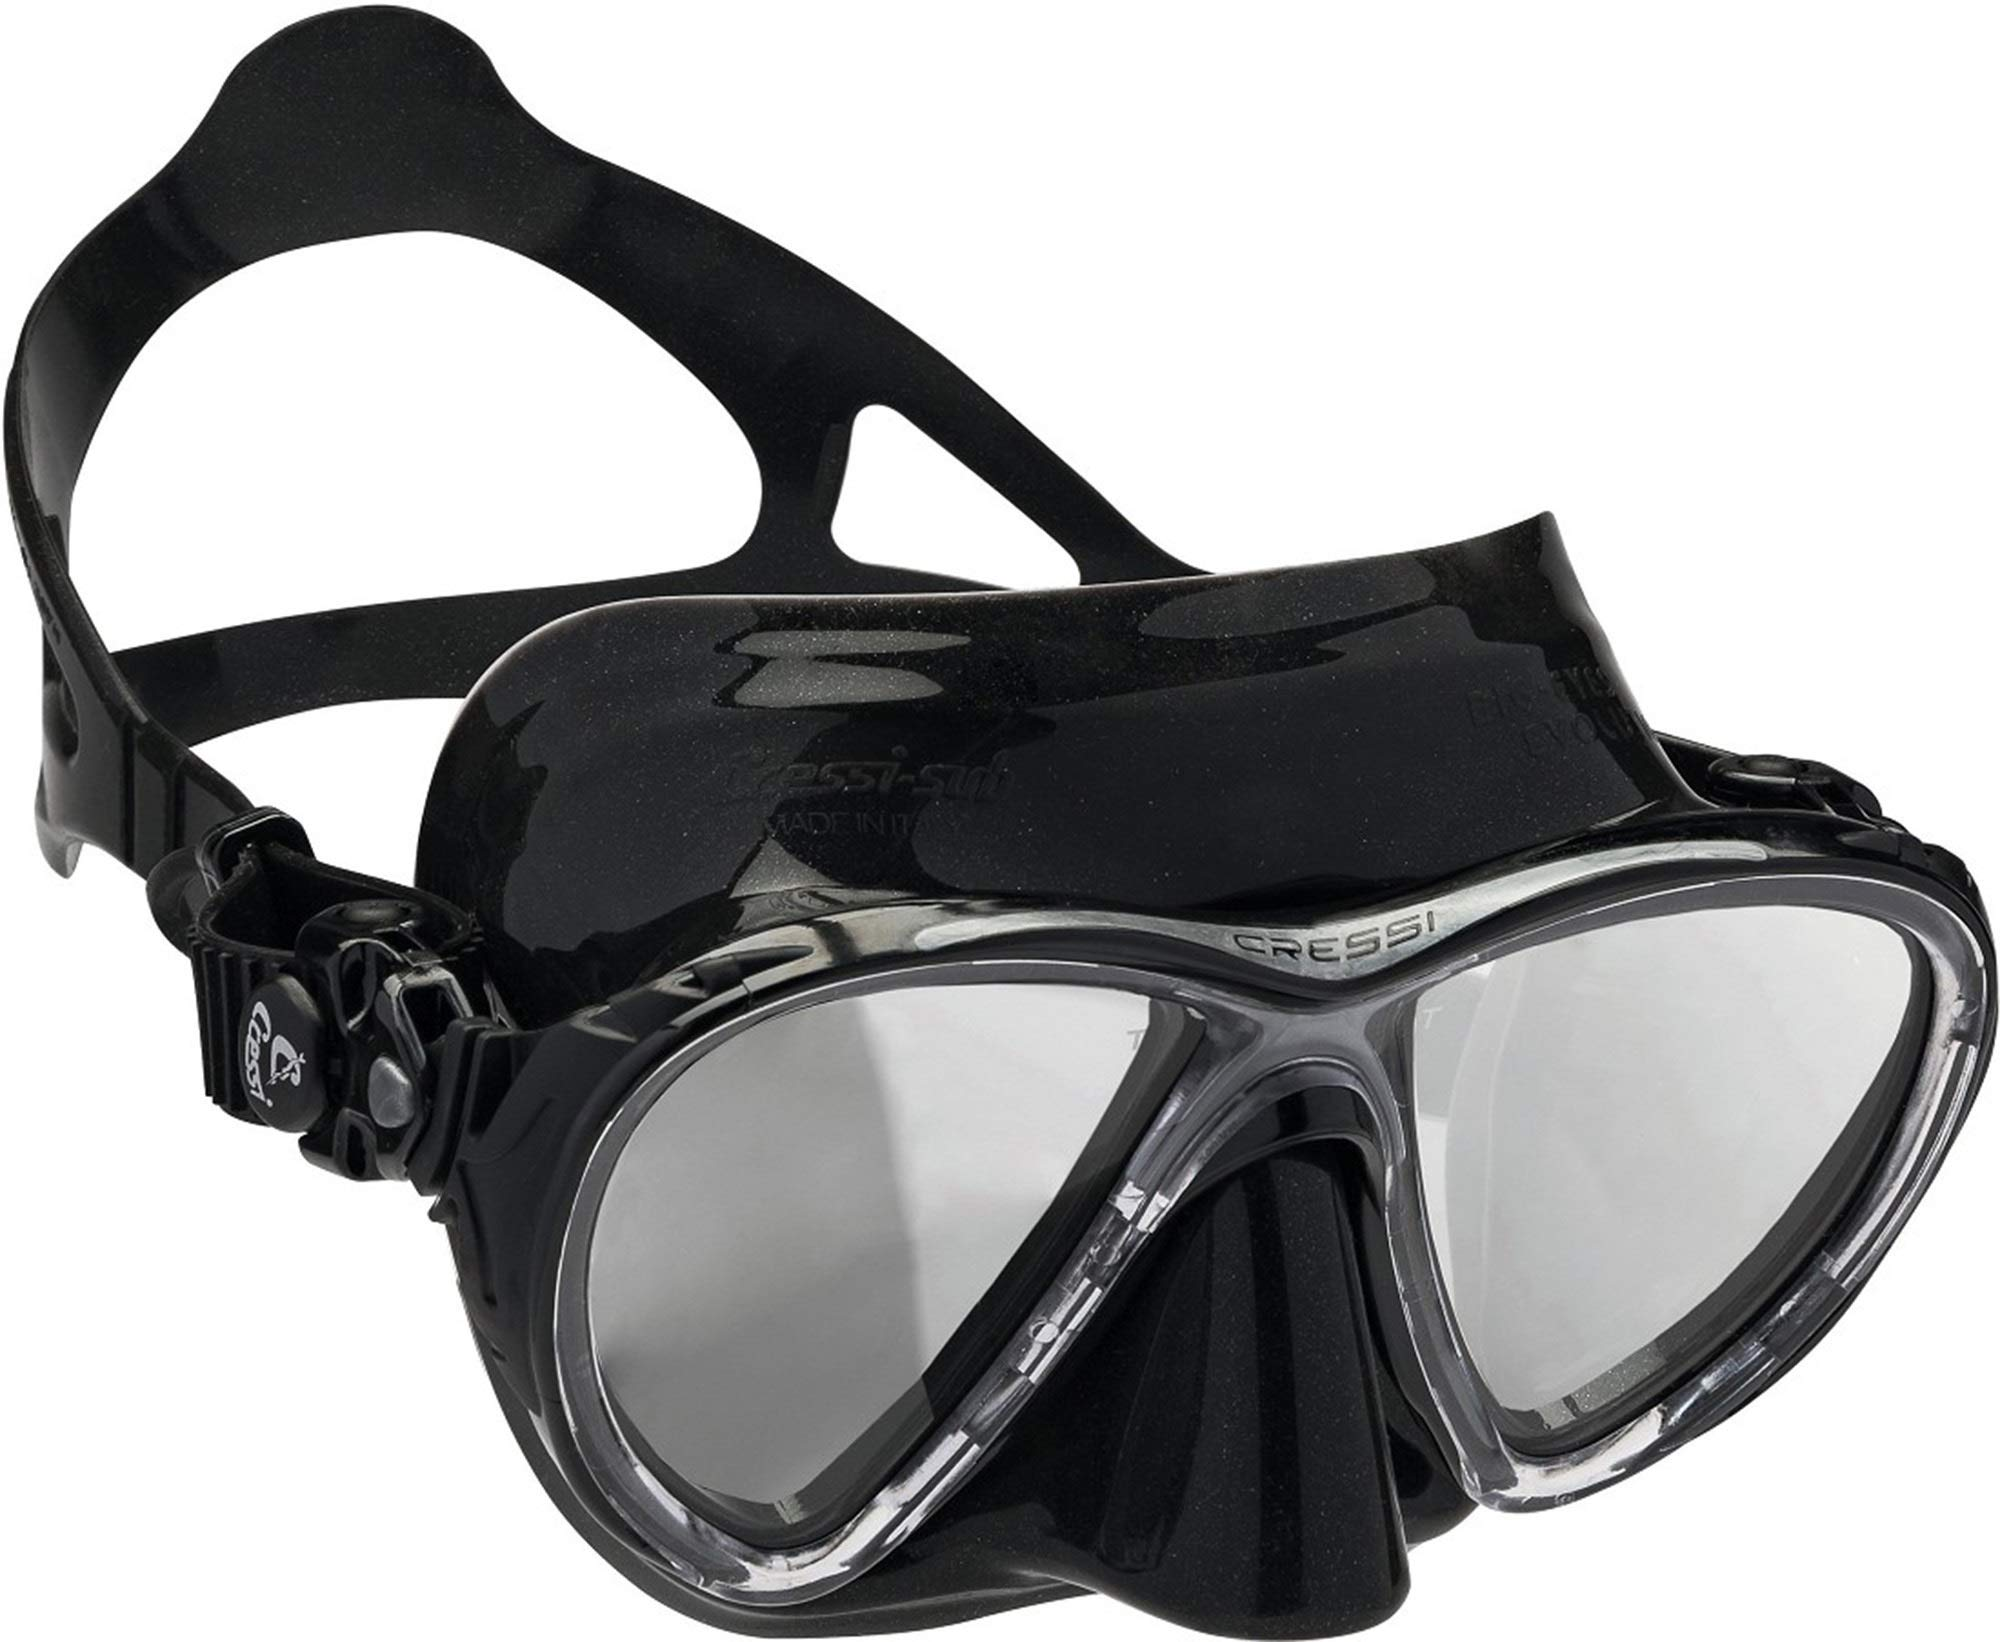 Cressi DS336950 Scuba Diving Big Eyes Evolution Mask Black/HD Mirrored Lenses by Cressi